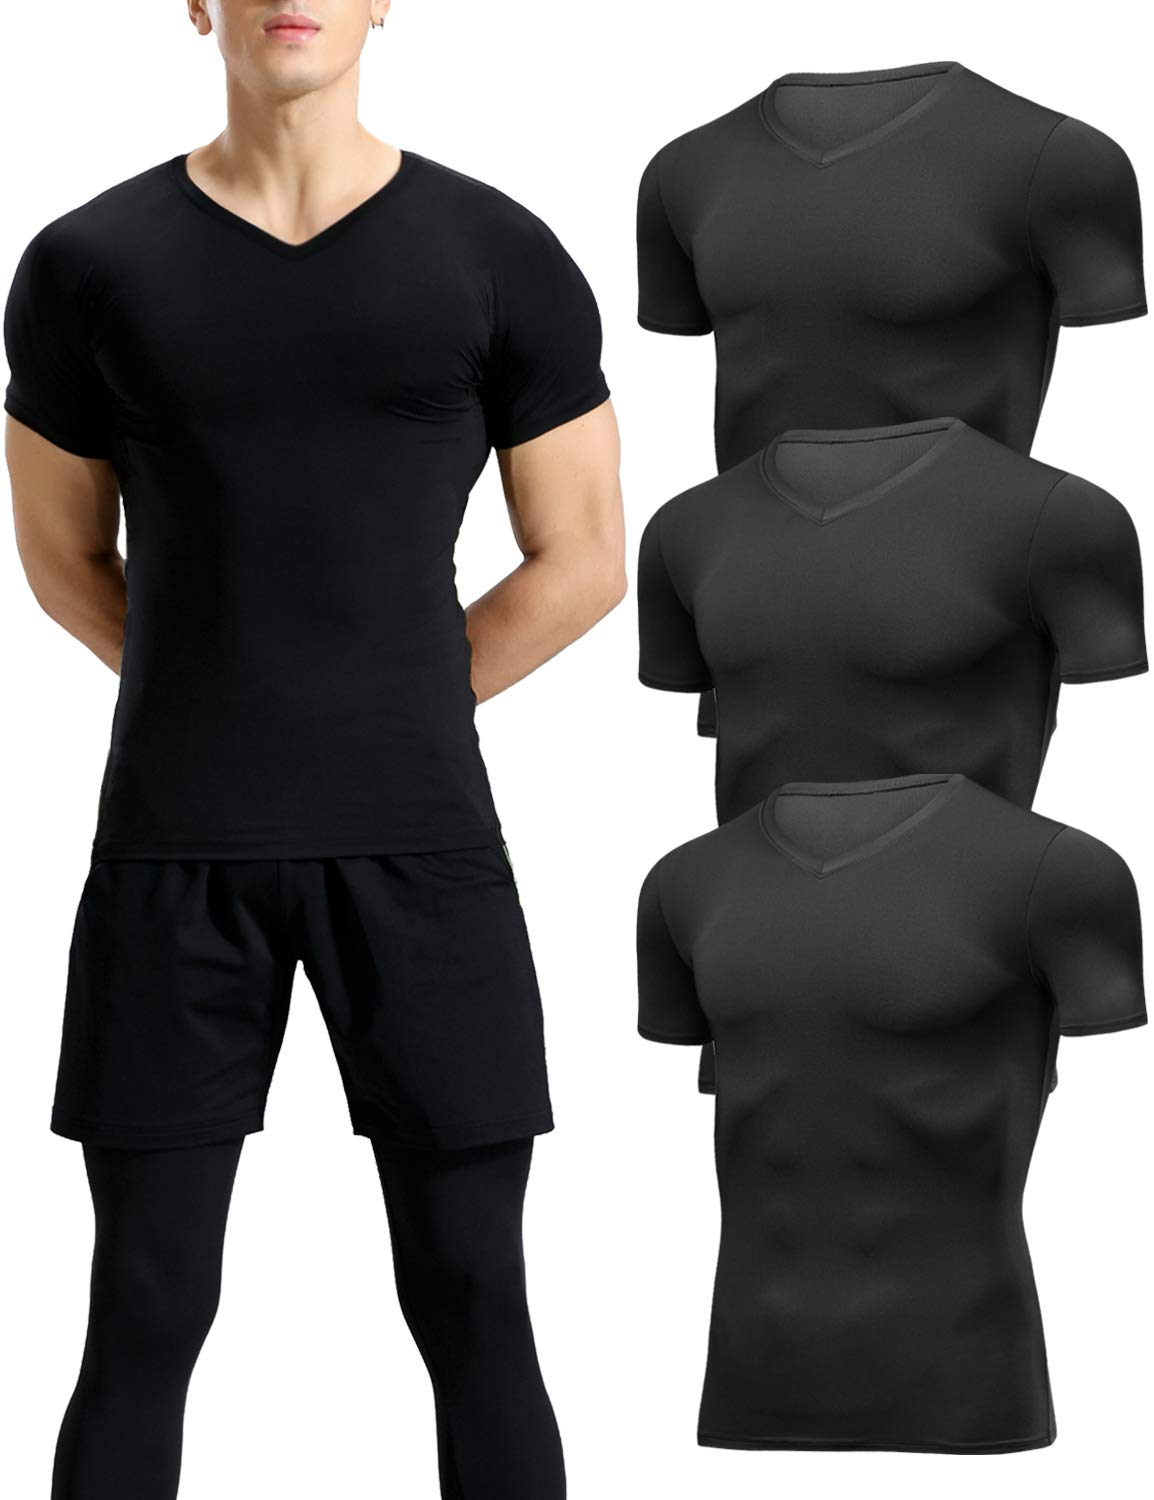 Lavento Men's Compression Shirts Cool Dry Short-Sleeve Workout Undershirts (3 Pack-V Neck Black,2X-Large) by Lavento